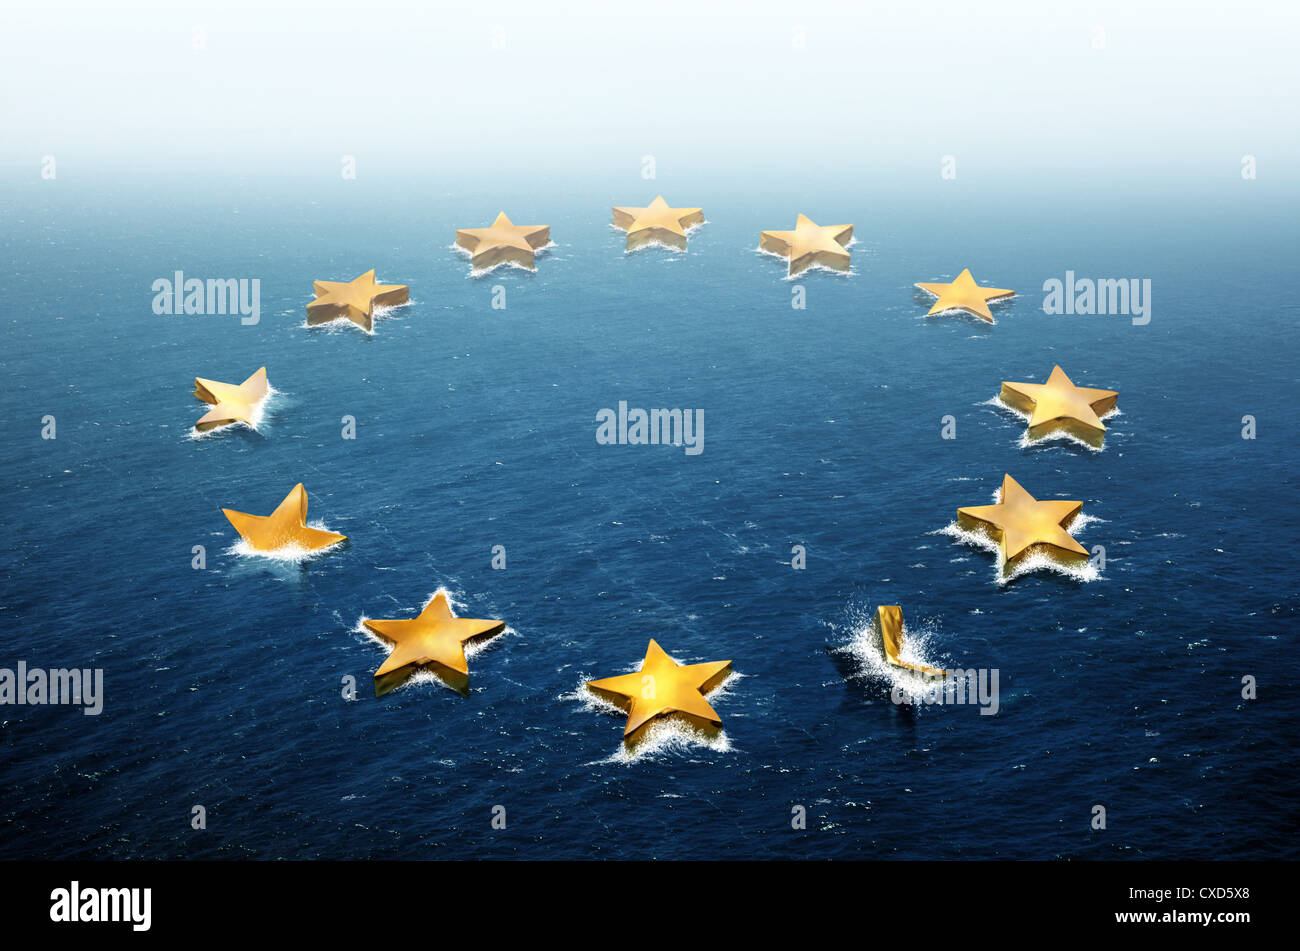 Conceptual image representing the stars of the European Union flag drifting and sinking in the ocean - Stock Image